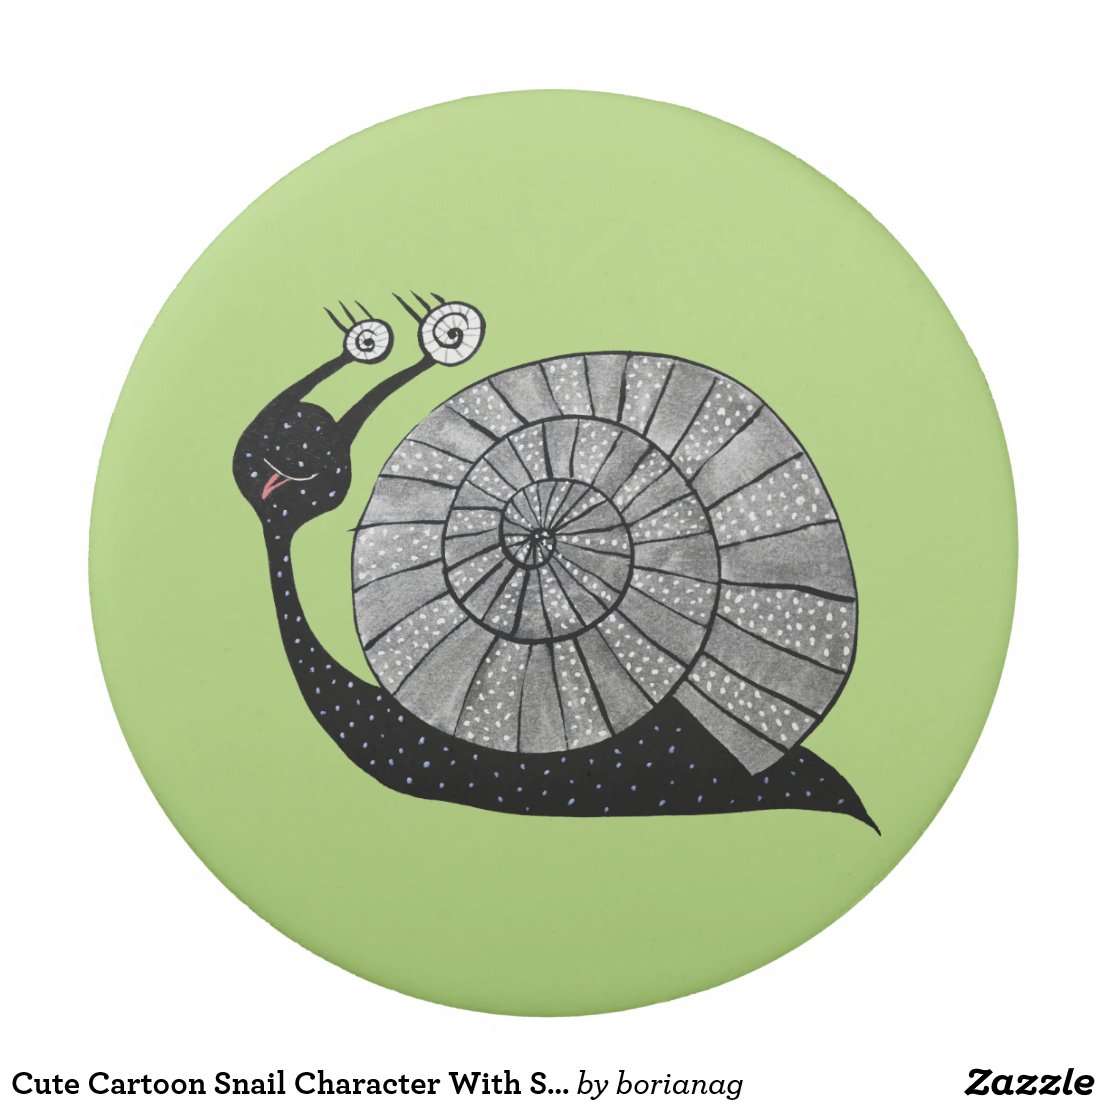 Cute Cartoon Snail Character With Spiral Eyes Eraser